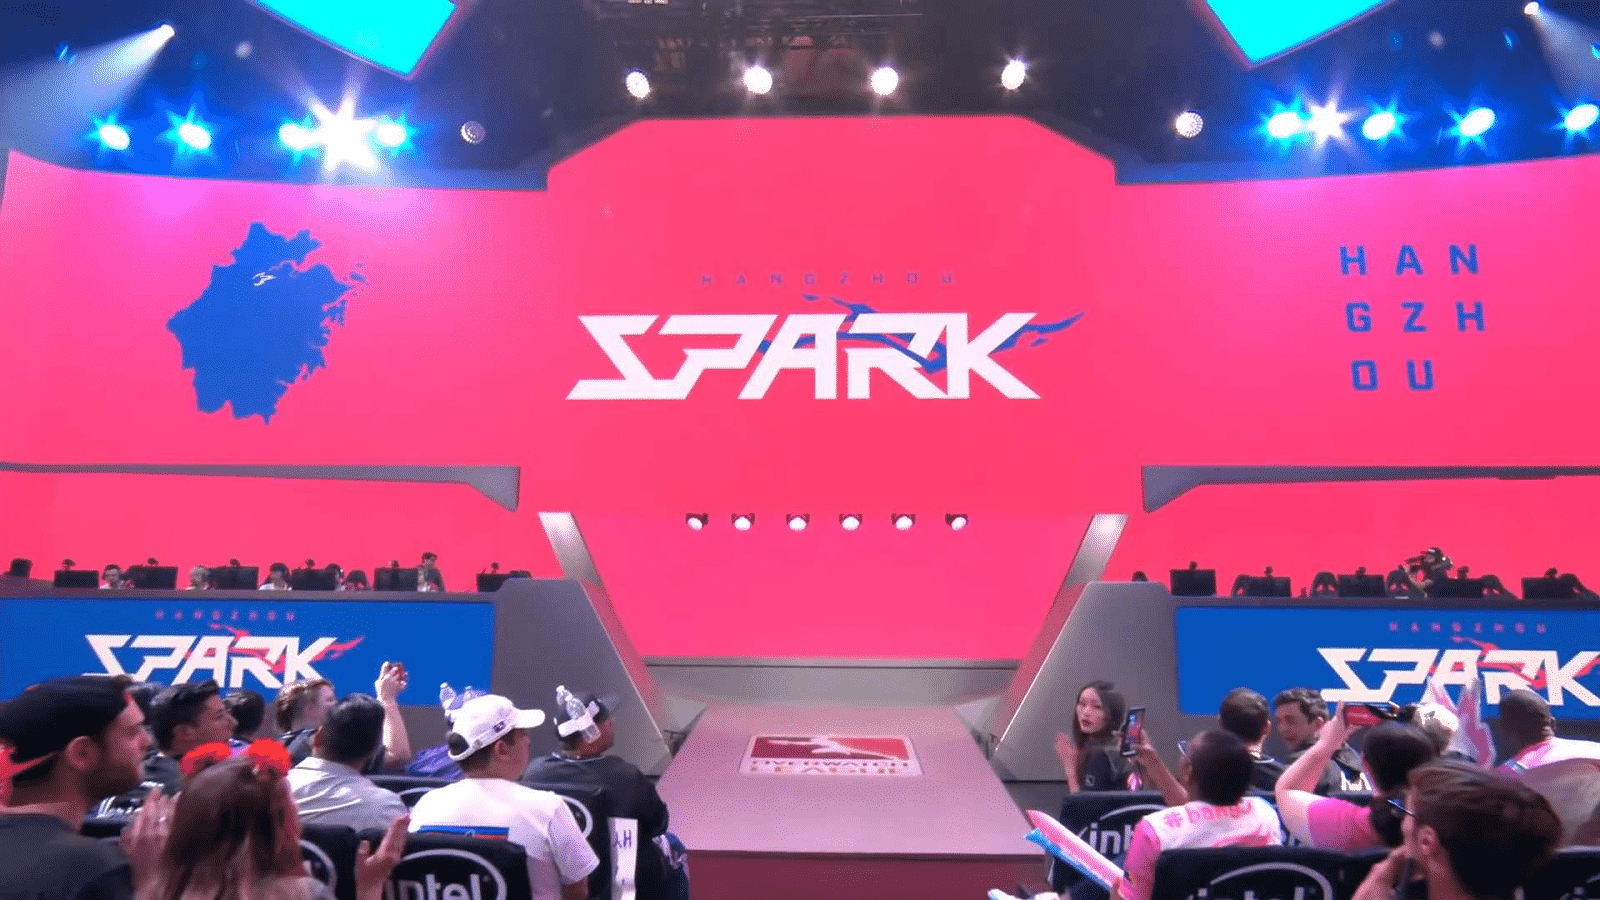 The team set up on the stage for a Hangzhou Spark homestand in pinks and whites.